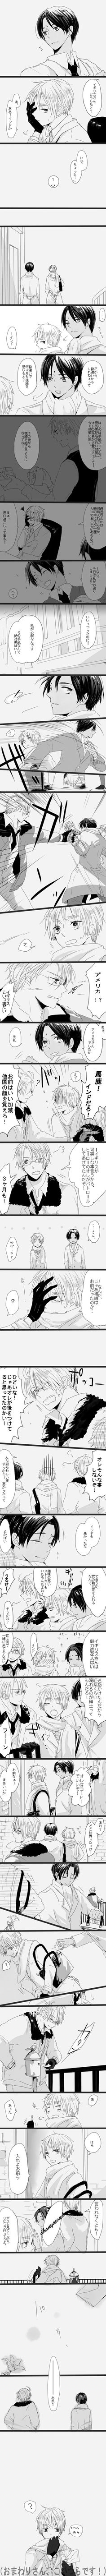 Aph India x England x America  does anyone know how to translate this into English? :3 I'm sure everyone wants to know what they are saying. X3